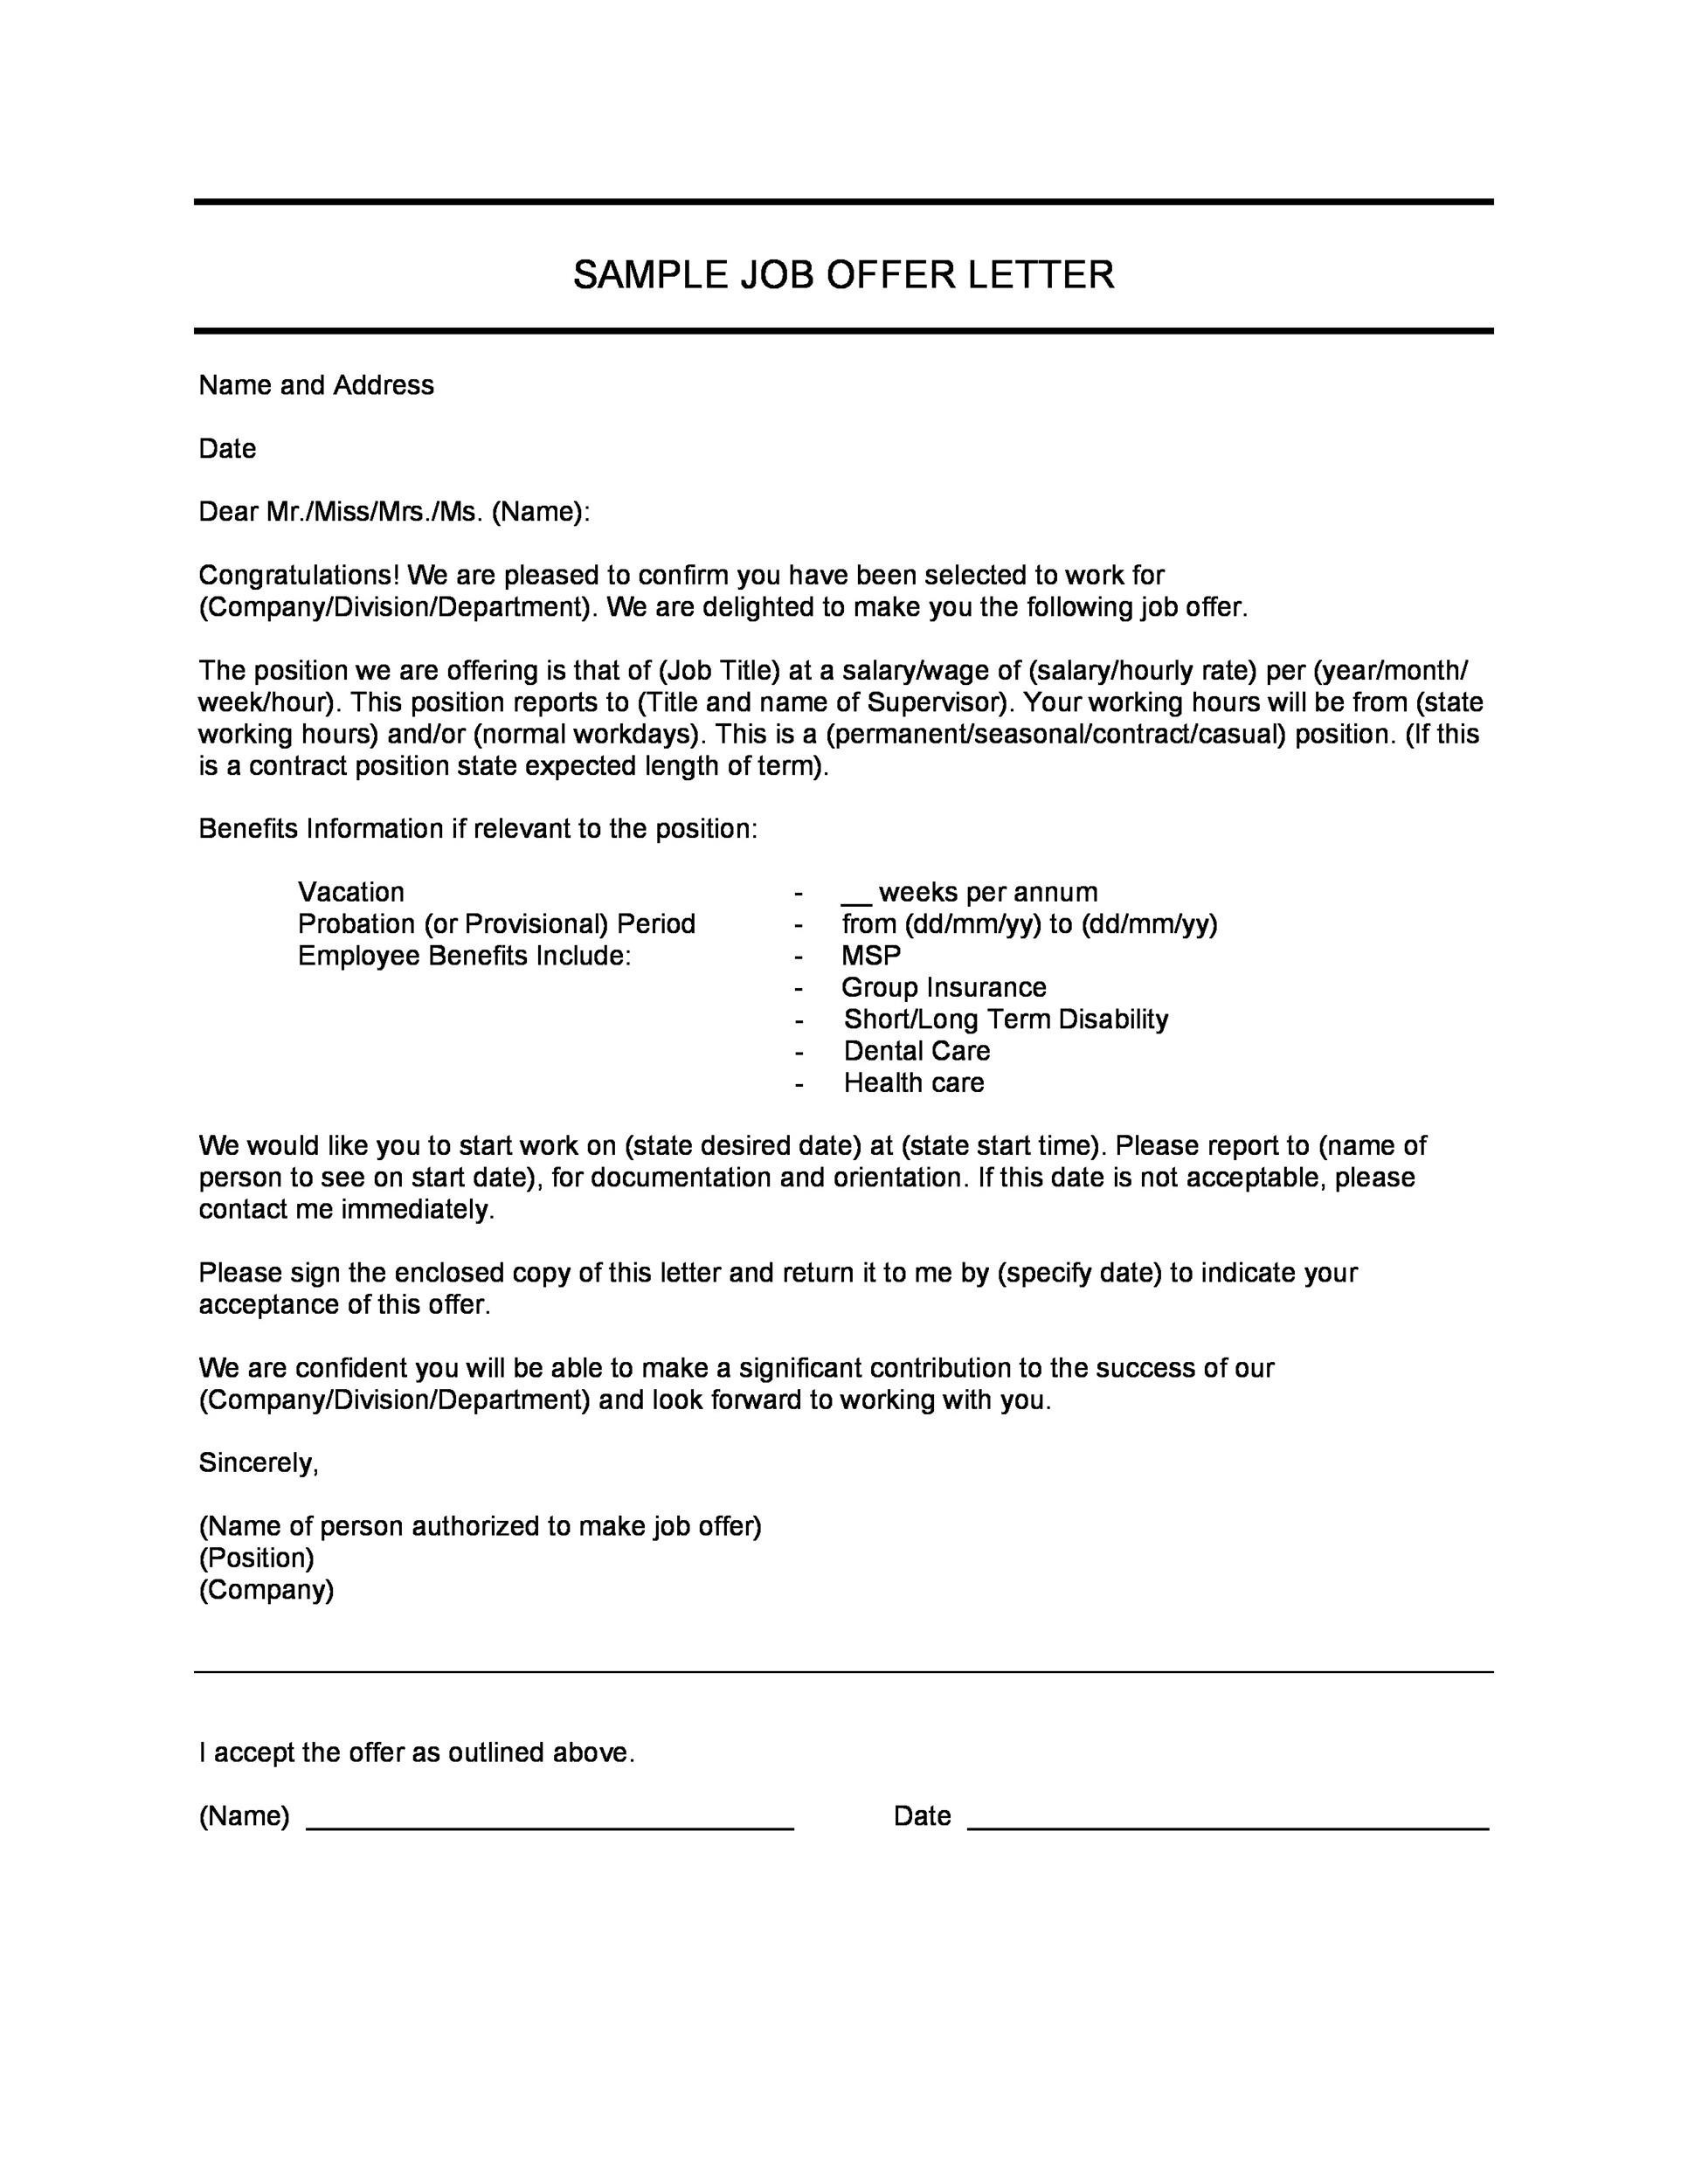 bank job offer letter sample